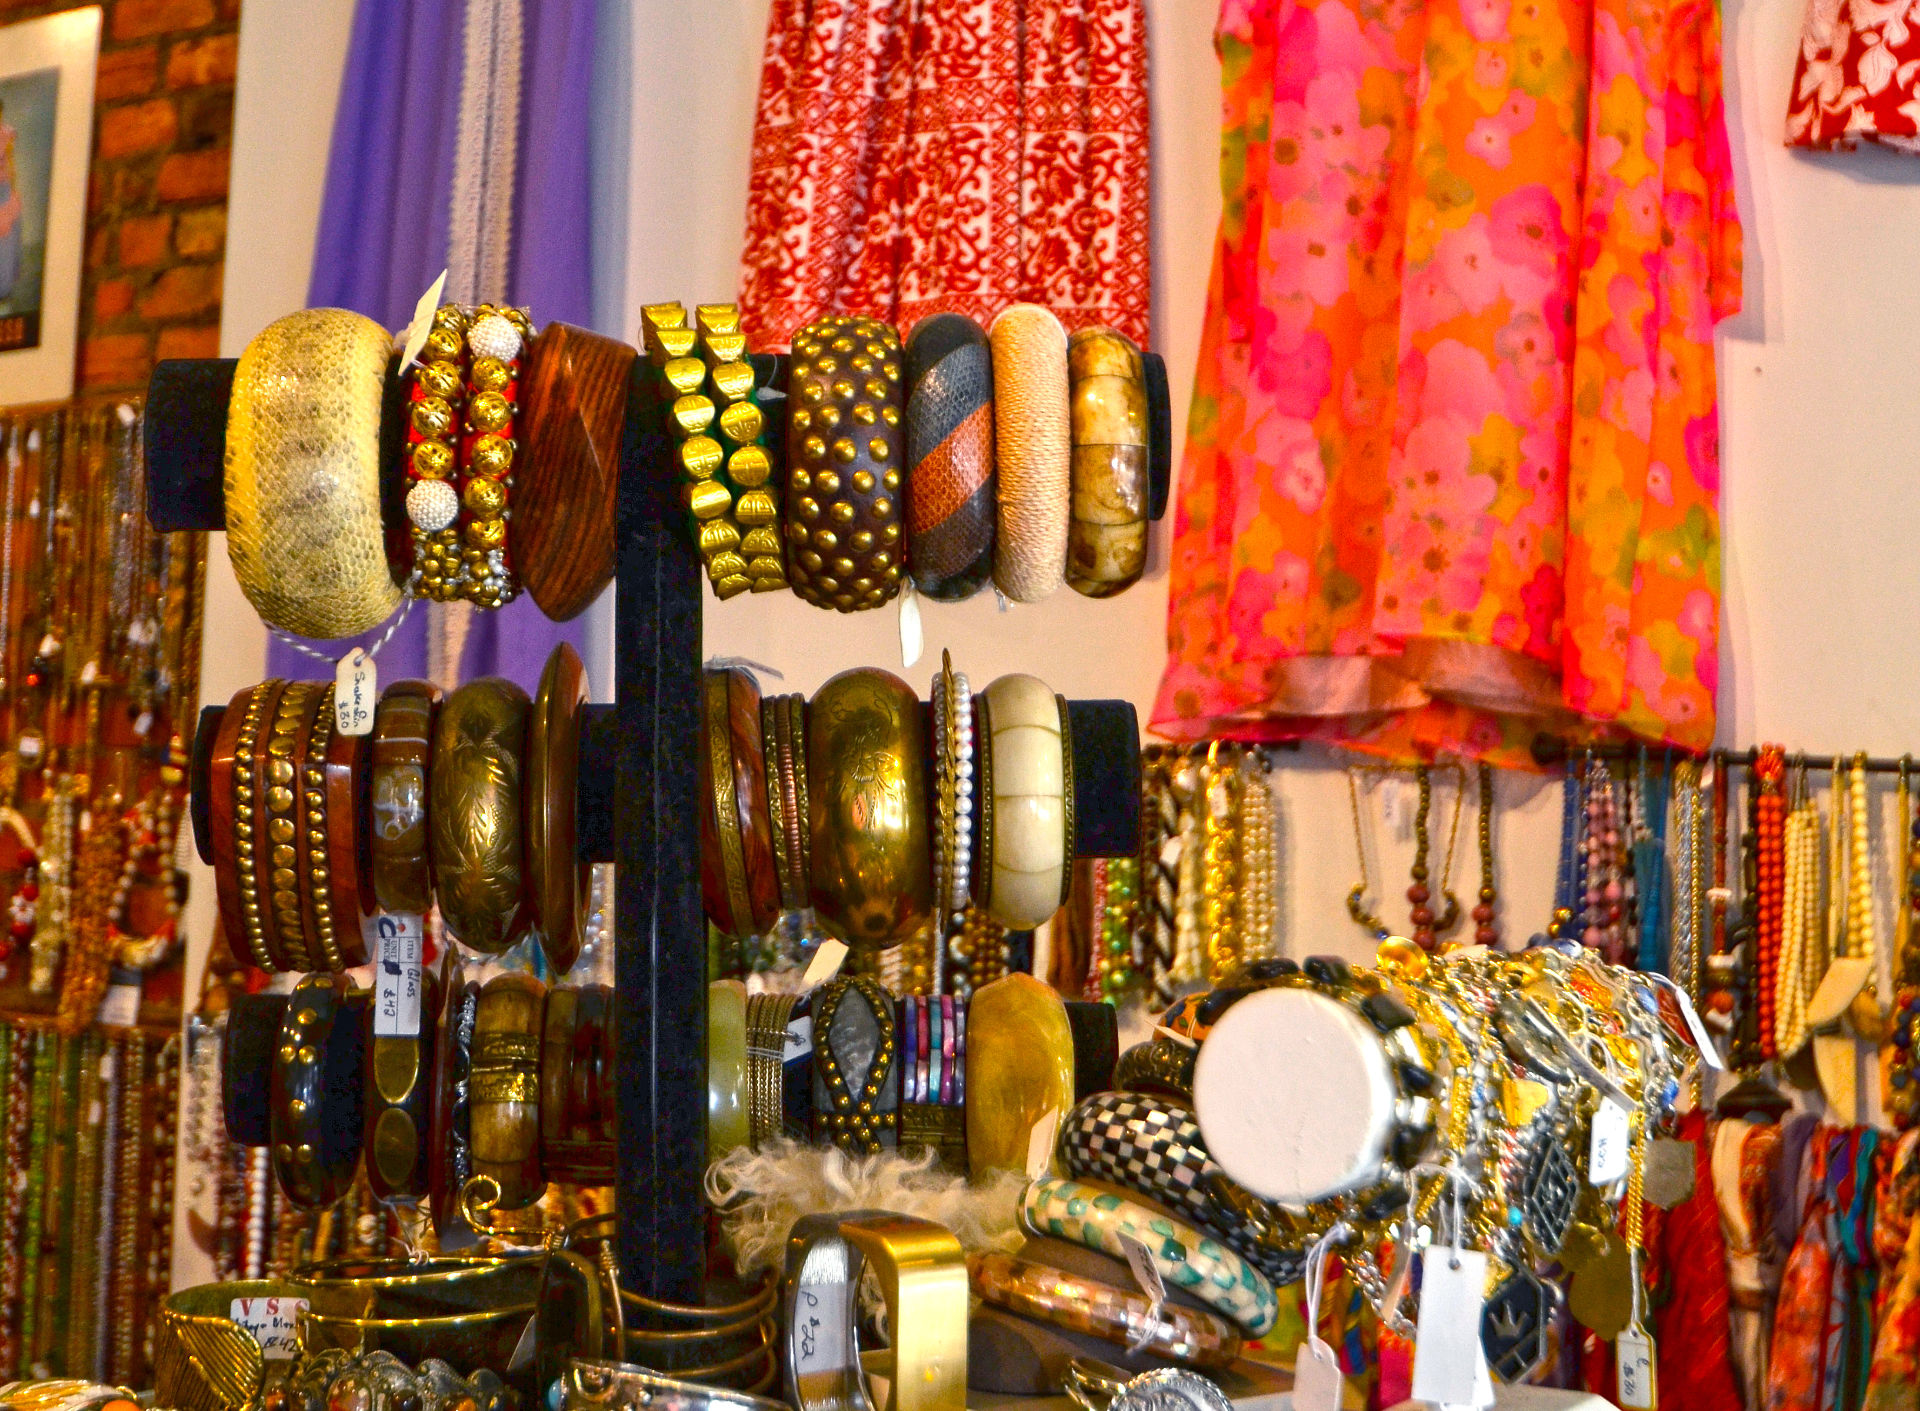 A number of wood and metal bracelets on a rack with bright fabrics and racks of necklaces in the background at VintageSoulGeek